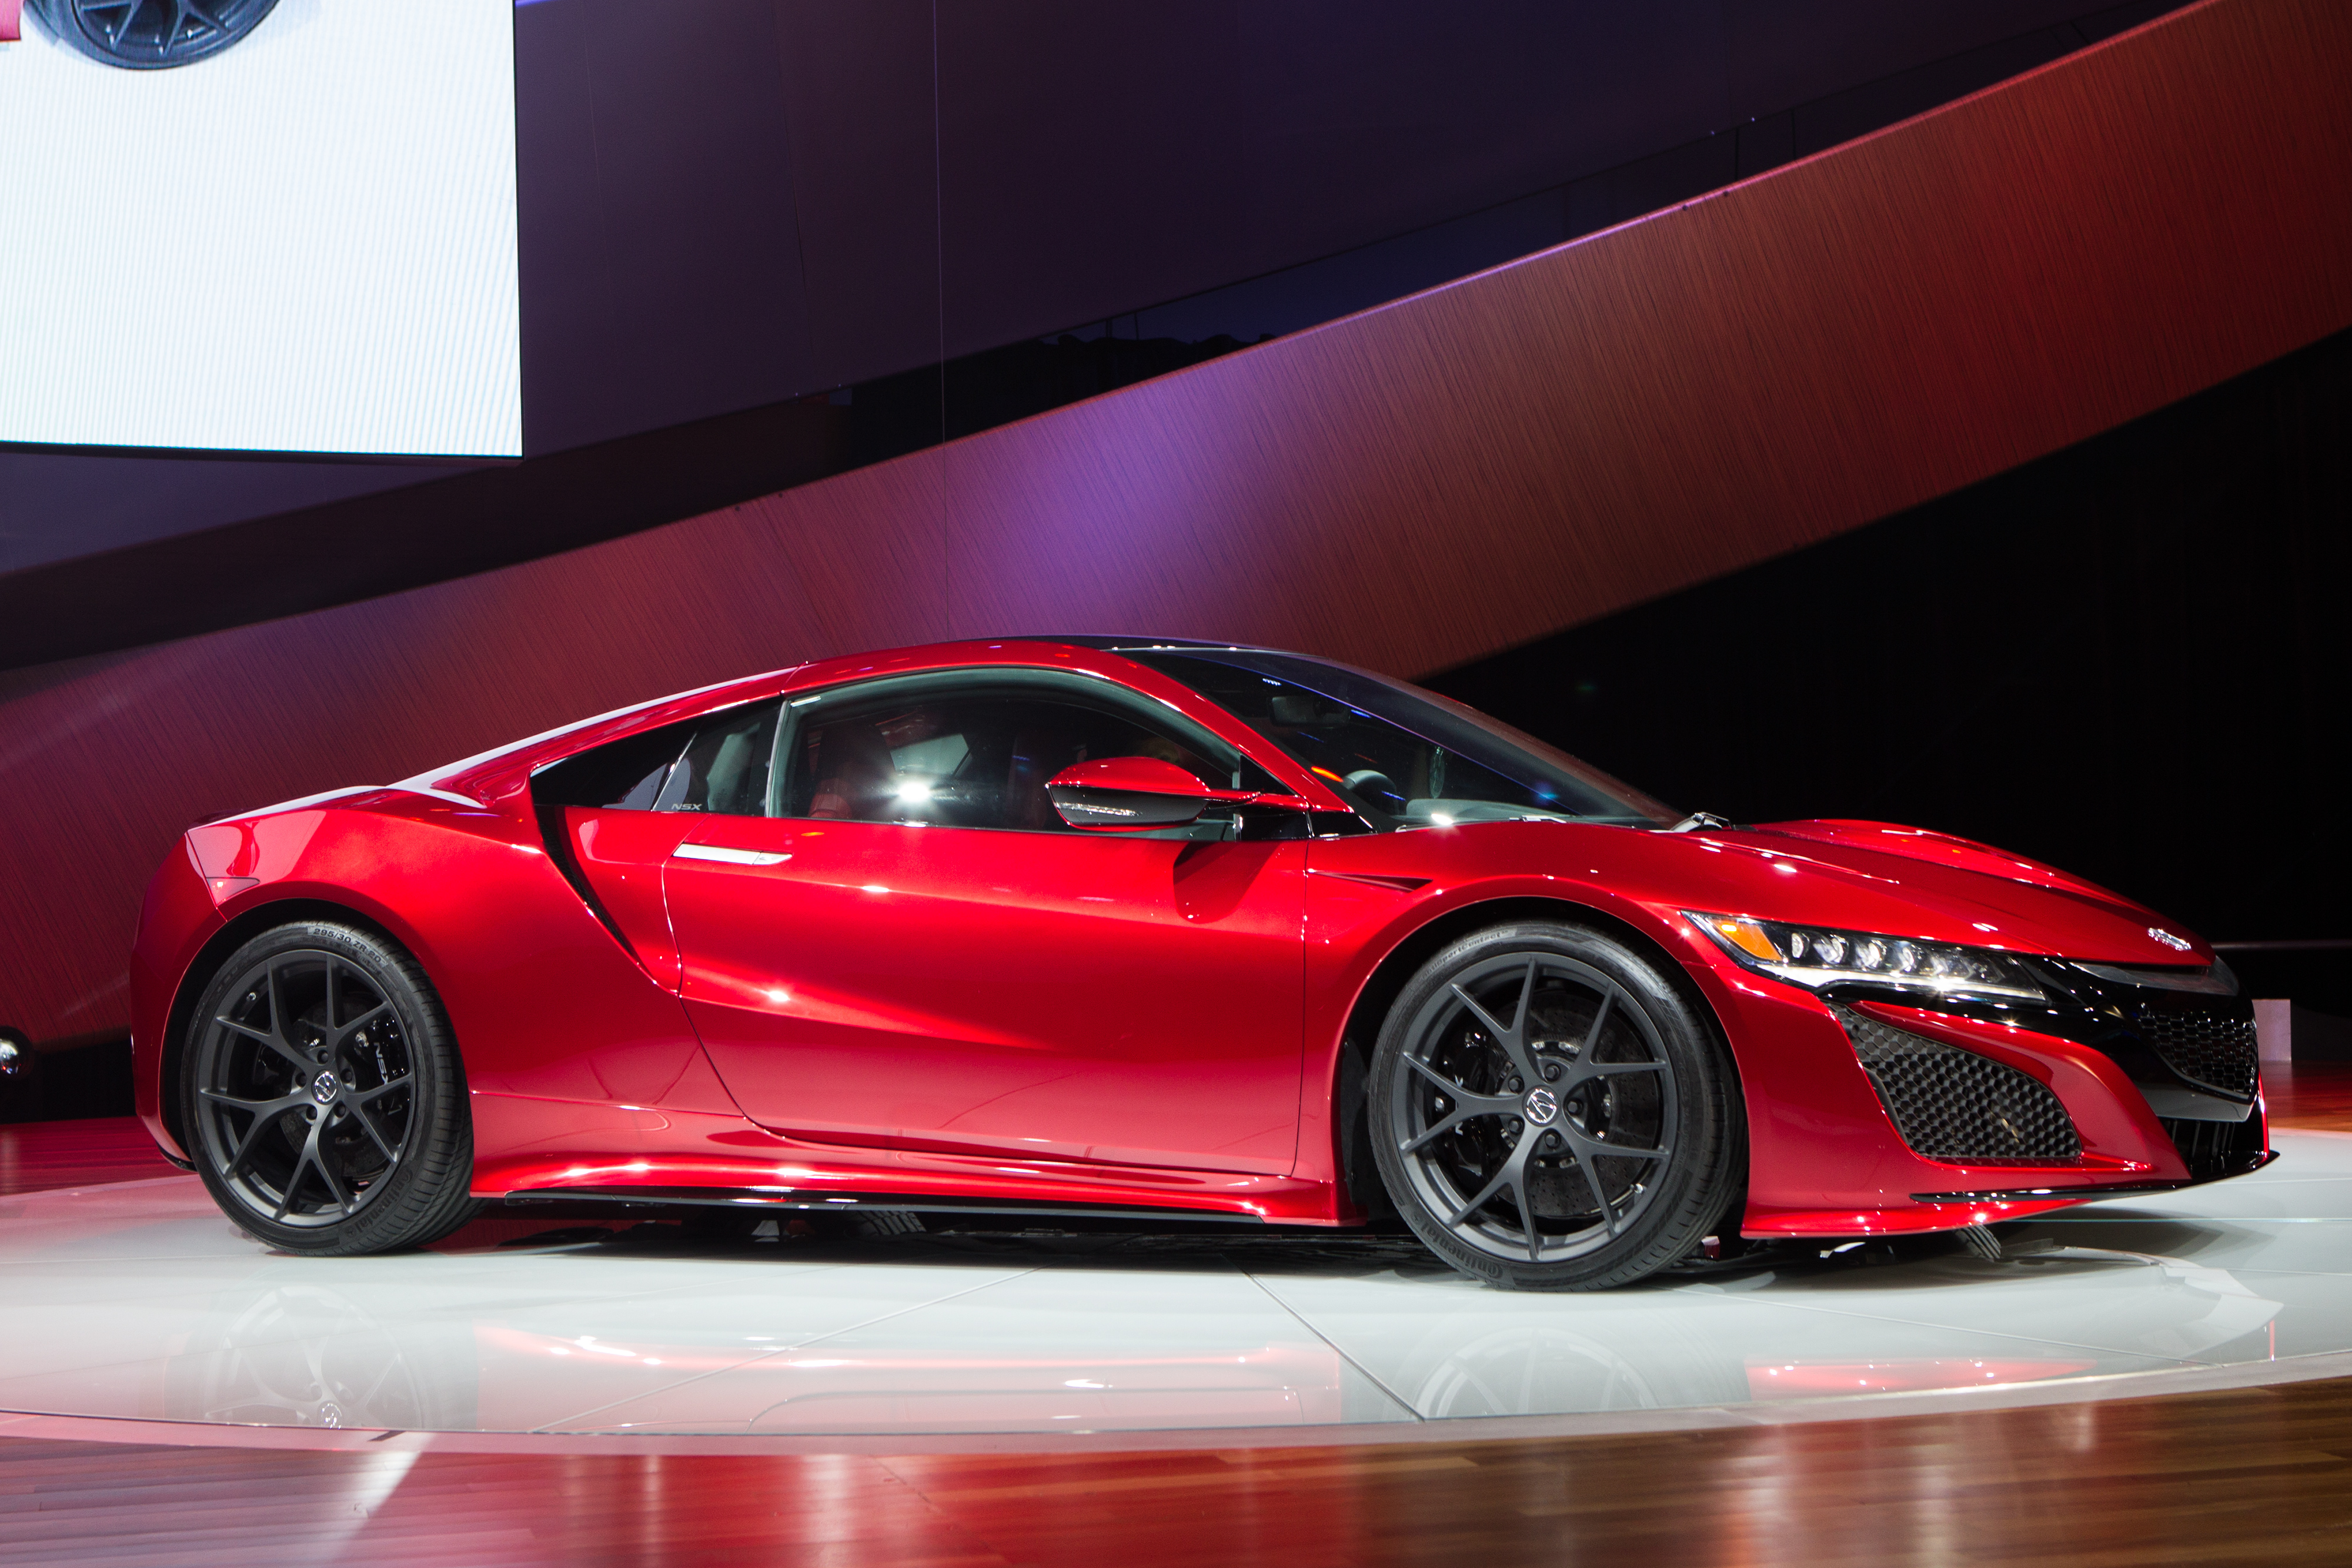 2017 Acura NSX Release Date Price | Reviews Of New Cars